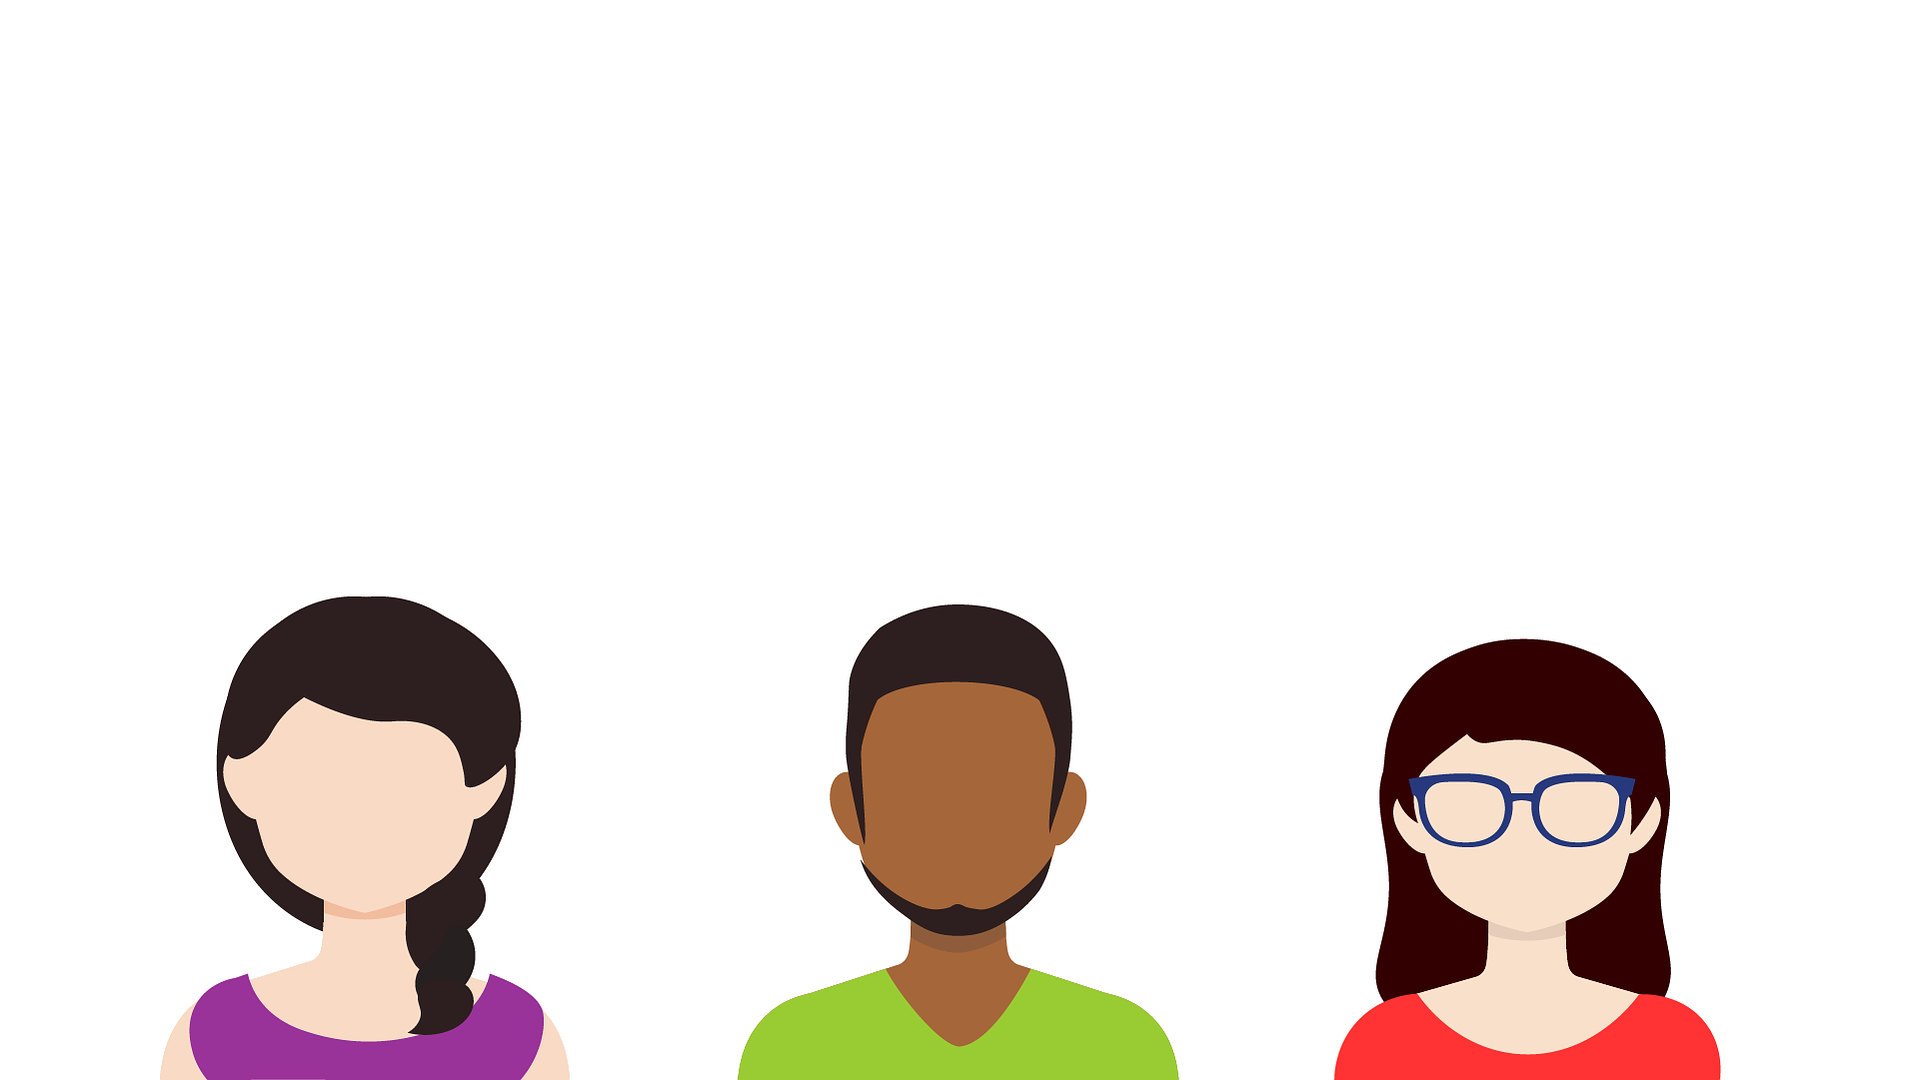 UKRI Provides Breakdown of Ethnicity of Funding Applicants and Awardees